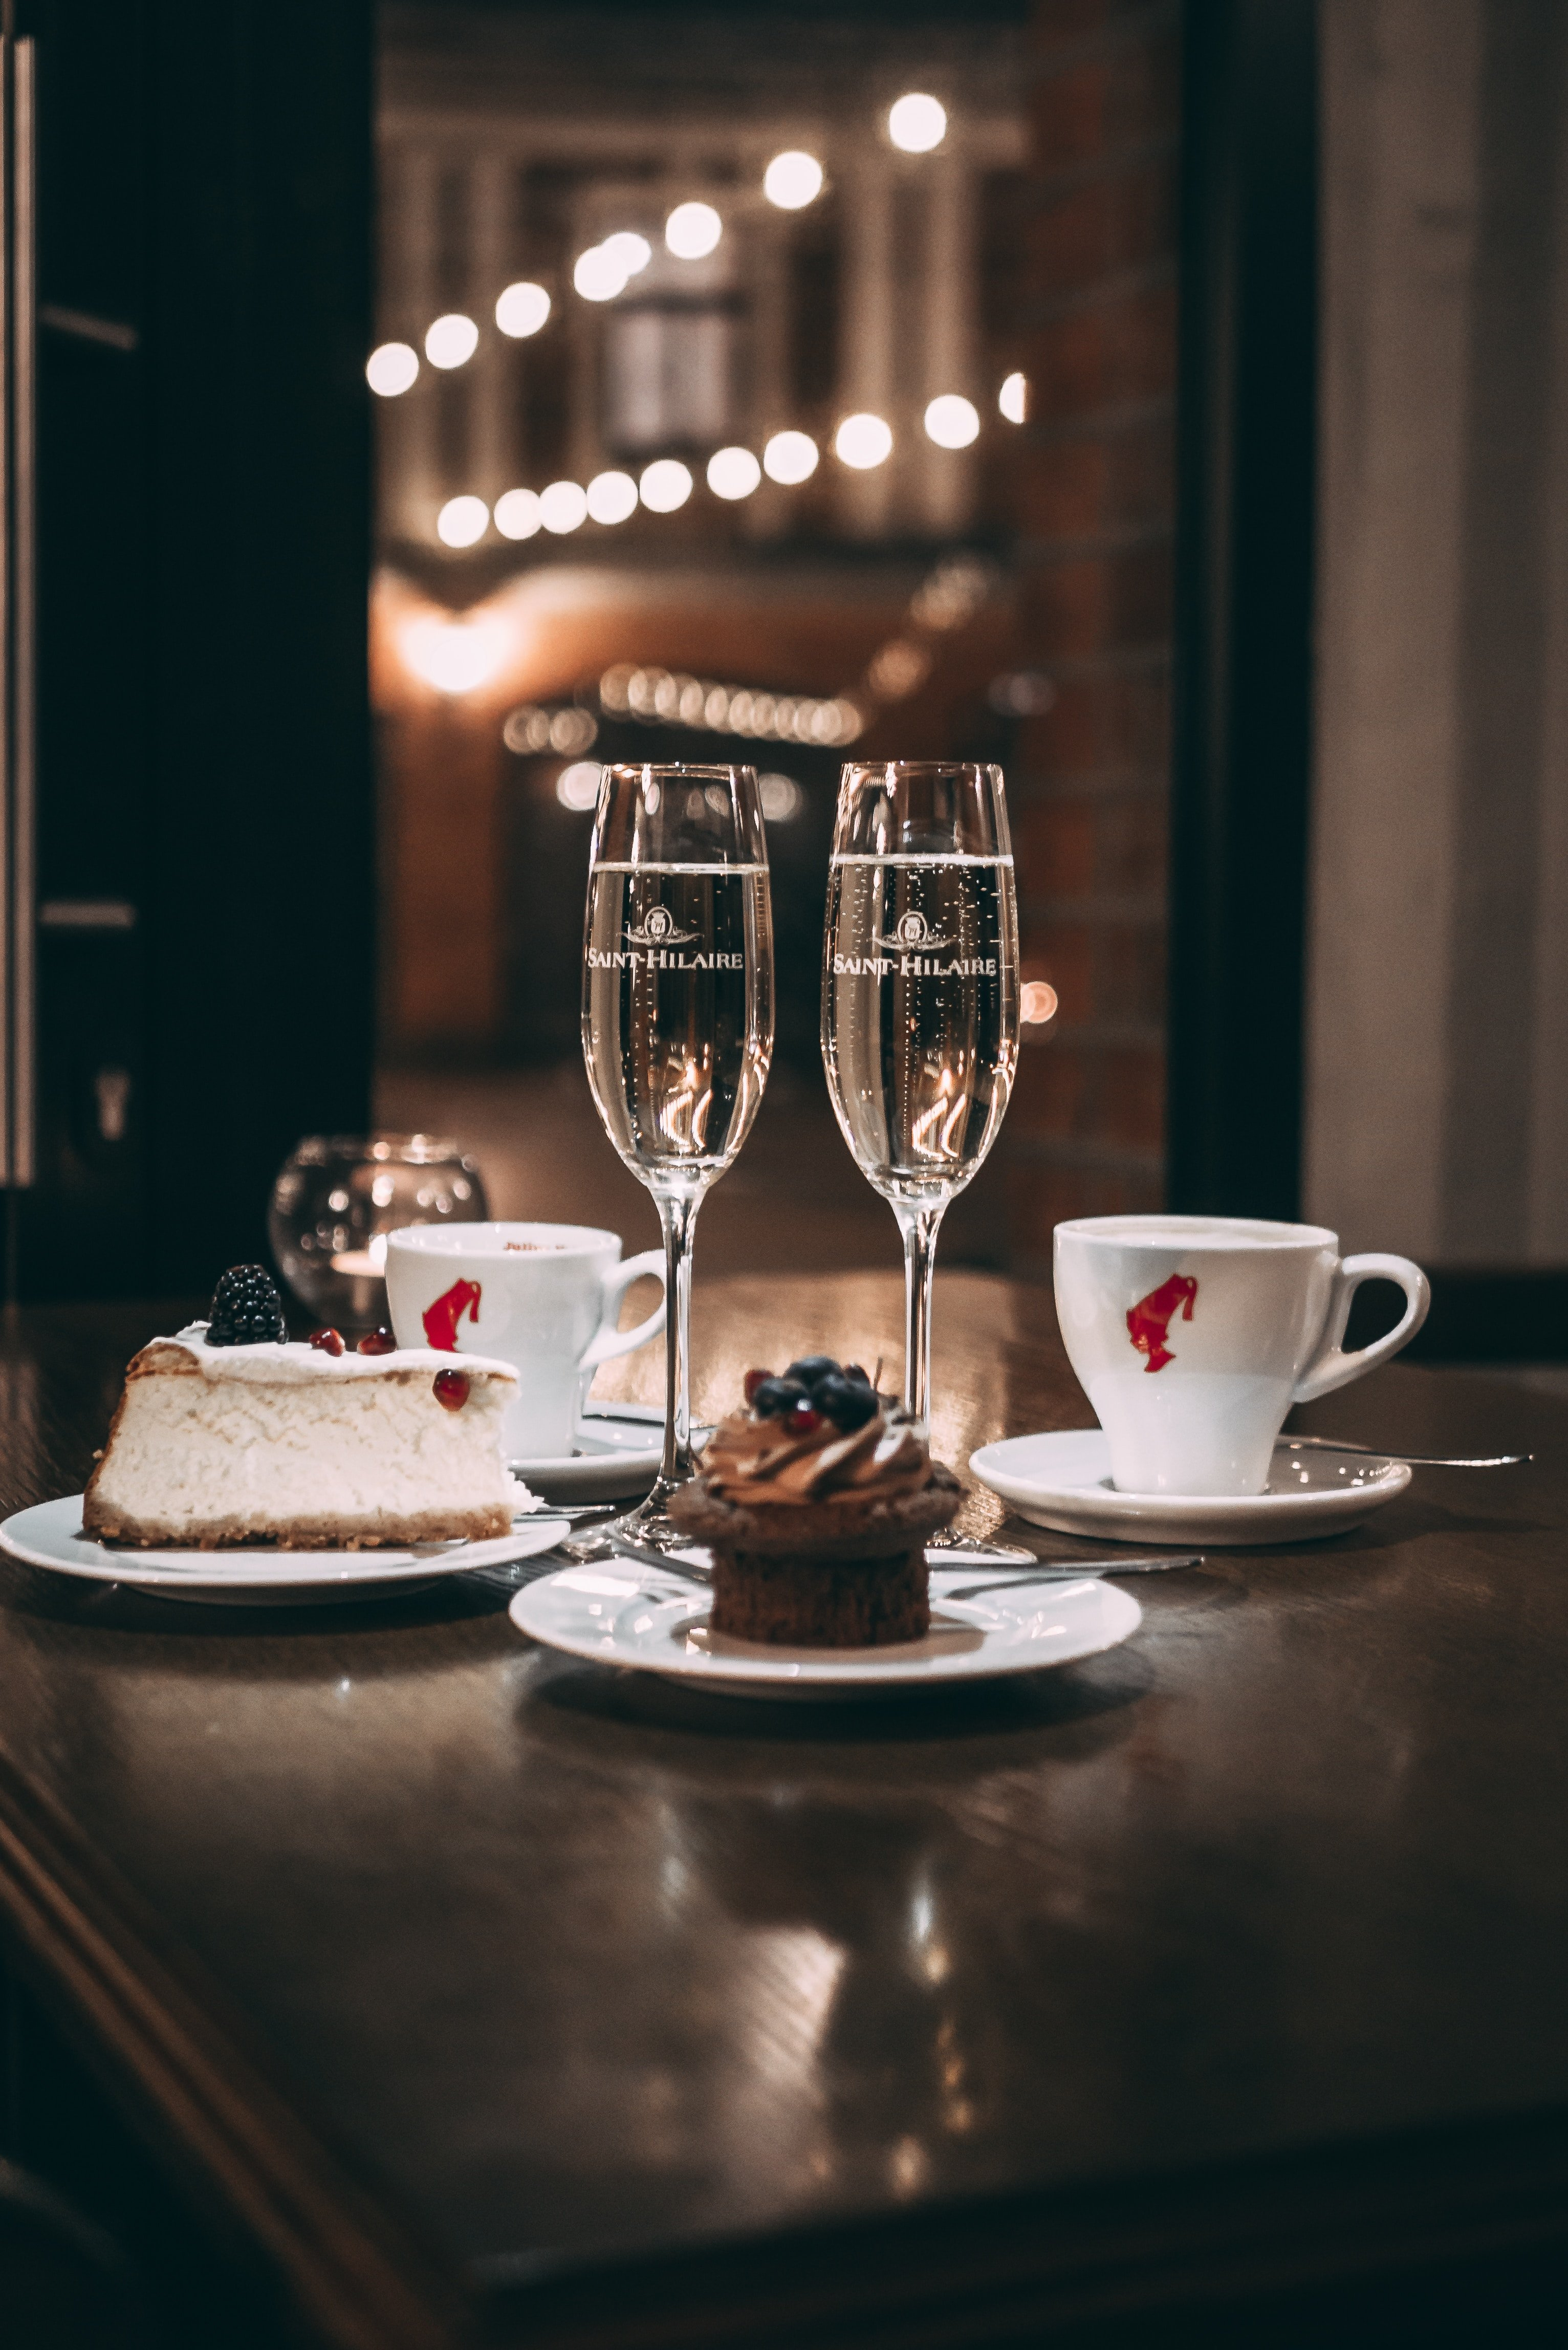 A table set for a romantic date | Source: Unsplash.com